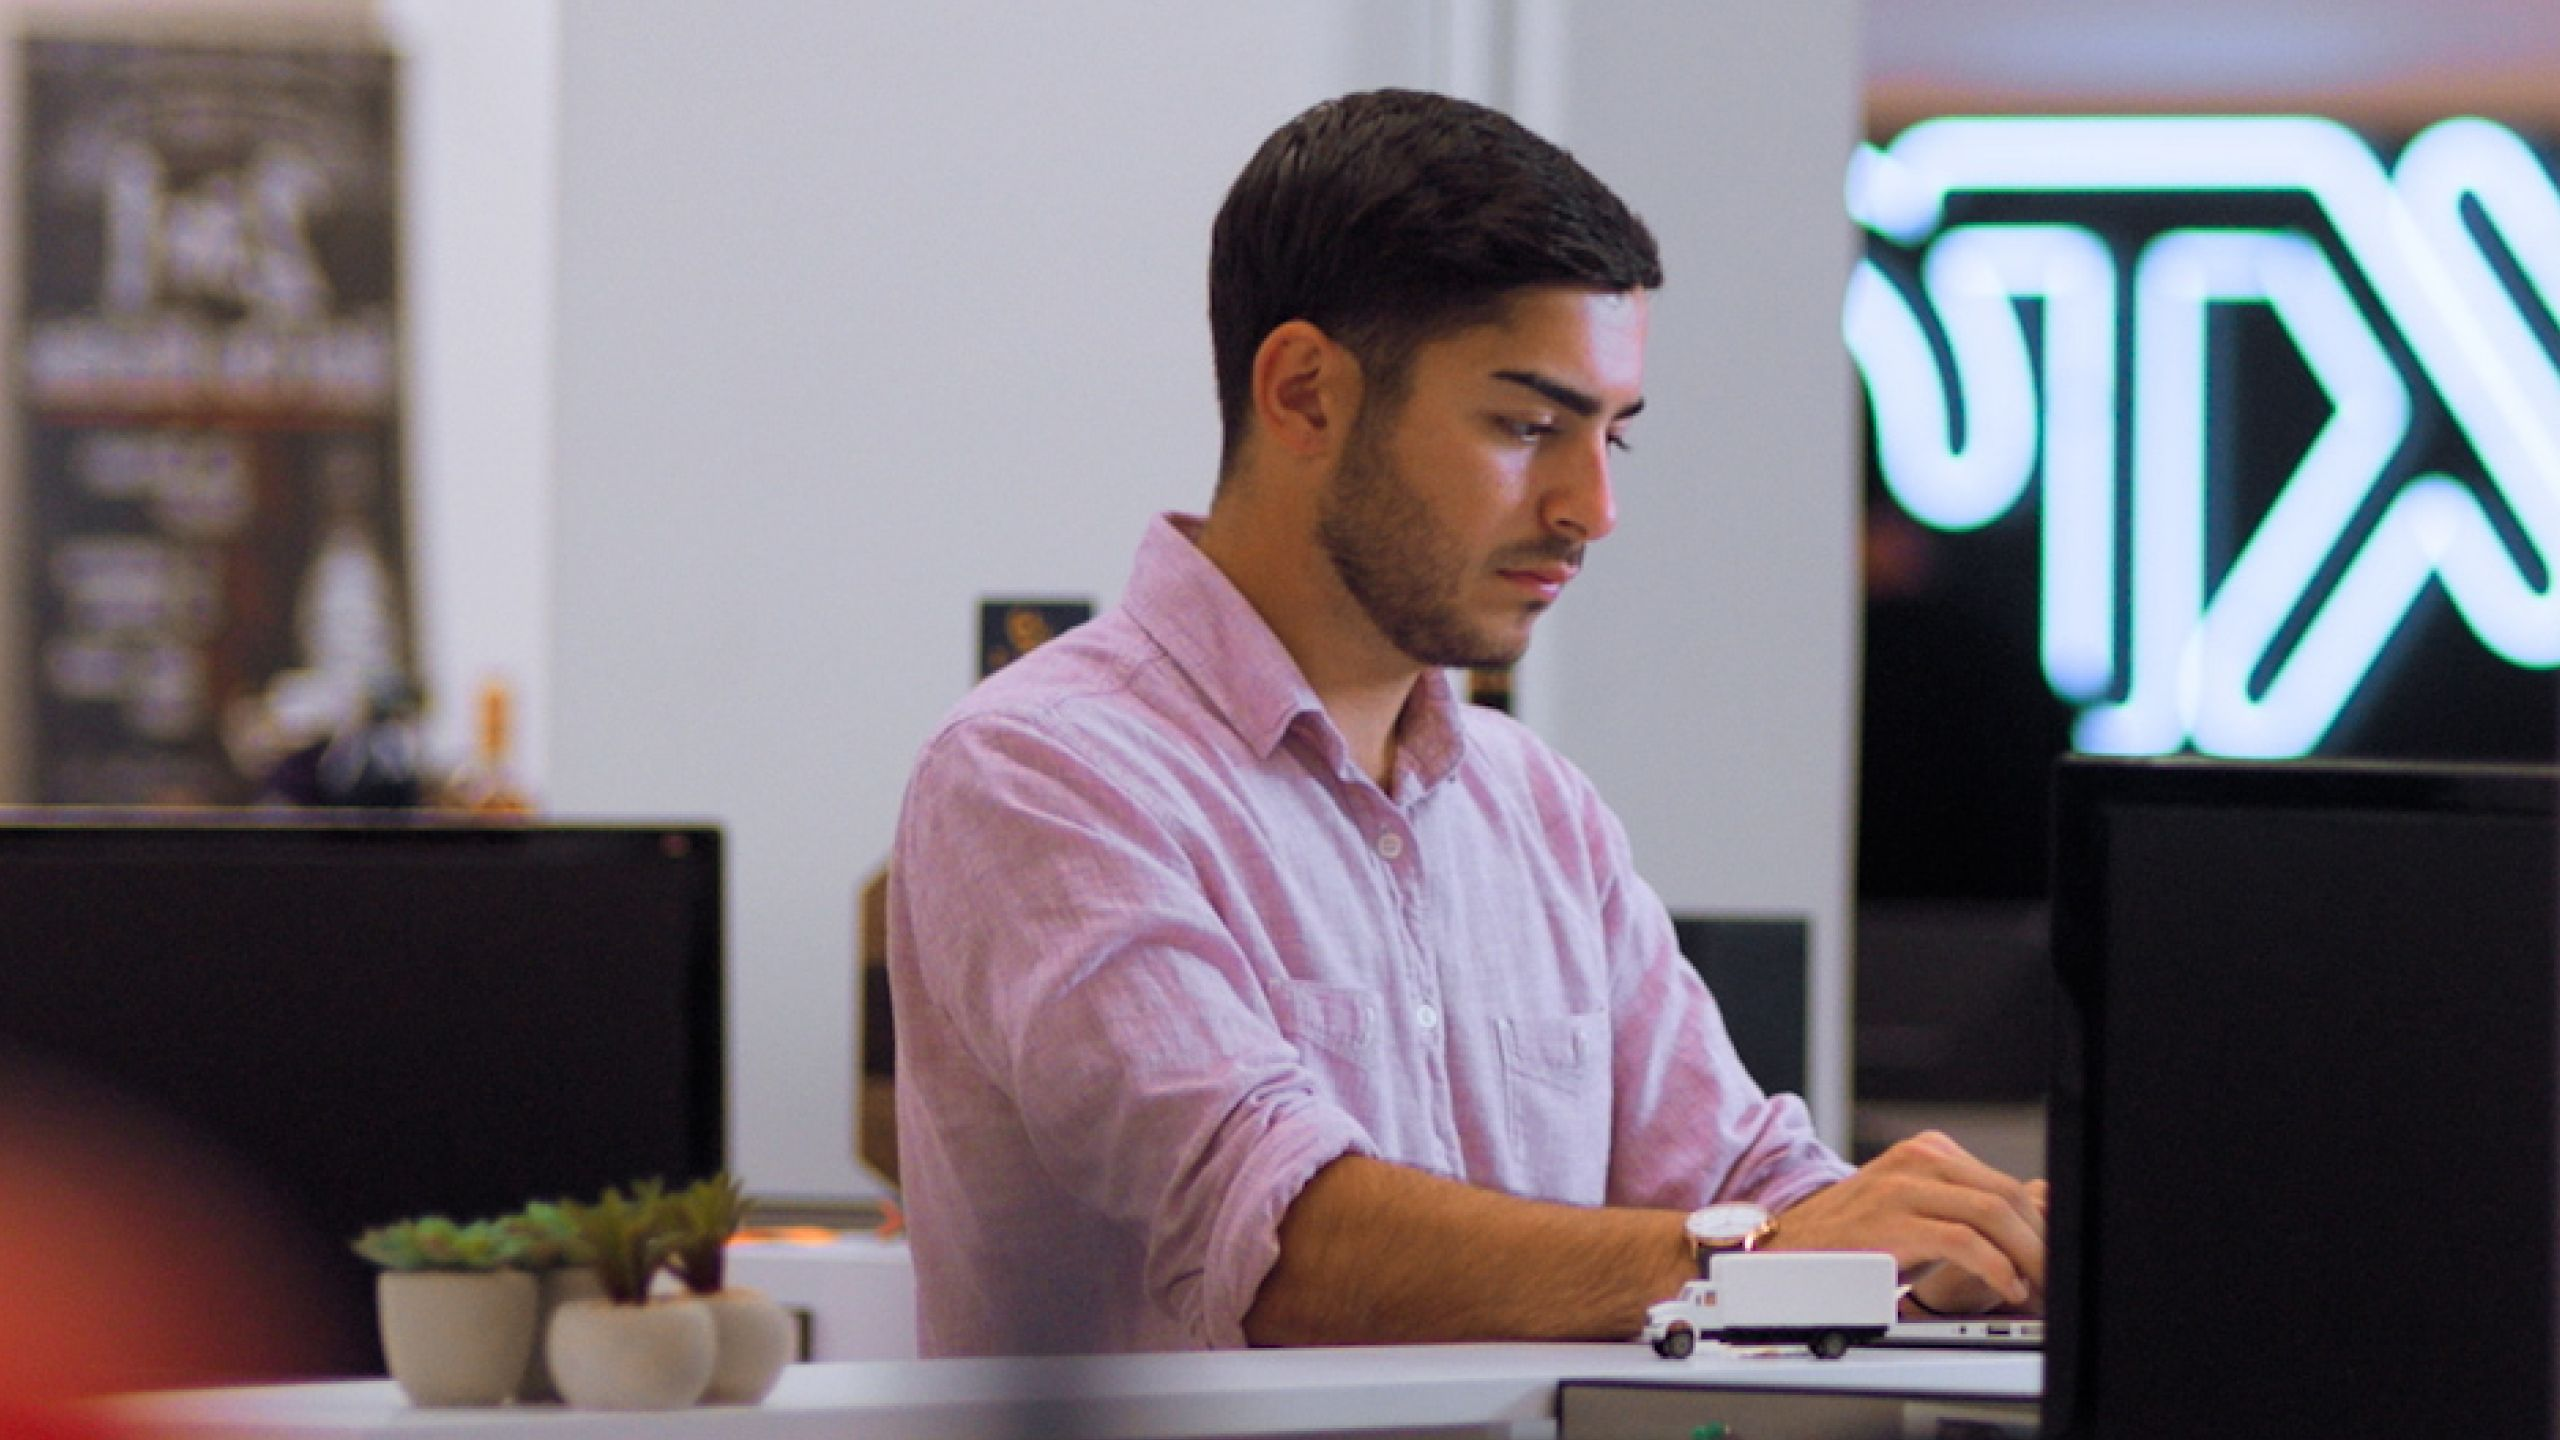 A person sitting at a desk